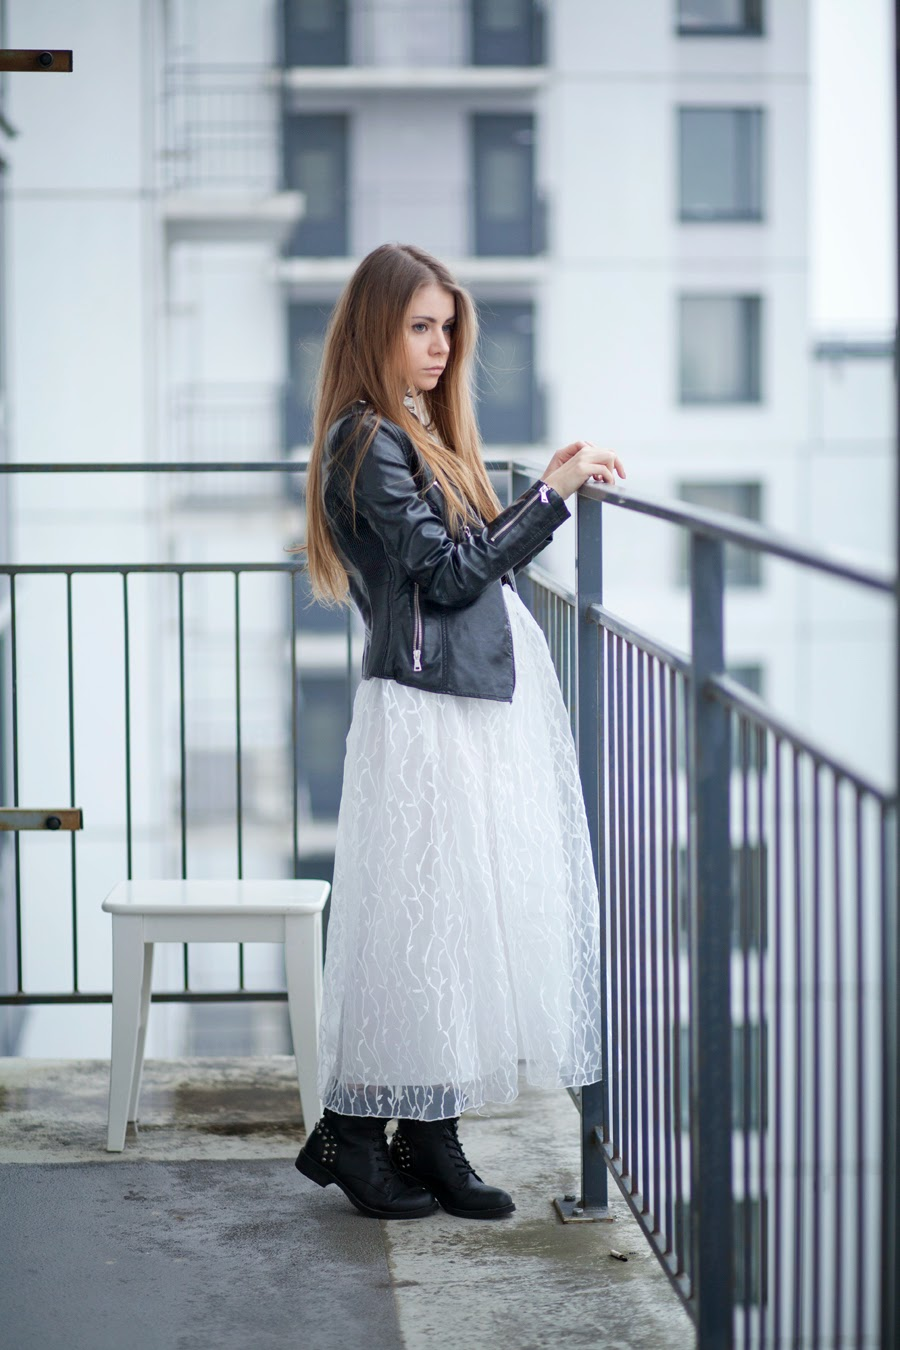 Anna Vershinina is wearing a white lace dress from Sheinside, leather jacket from Style Moi and the shoes are from Incity